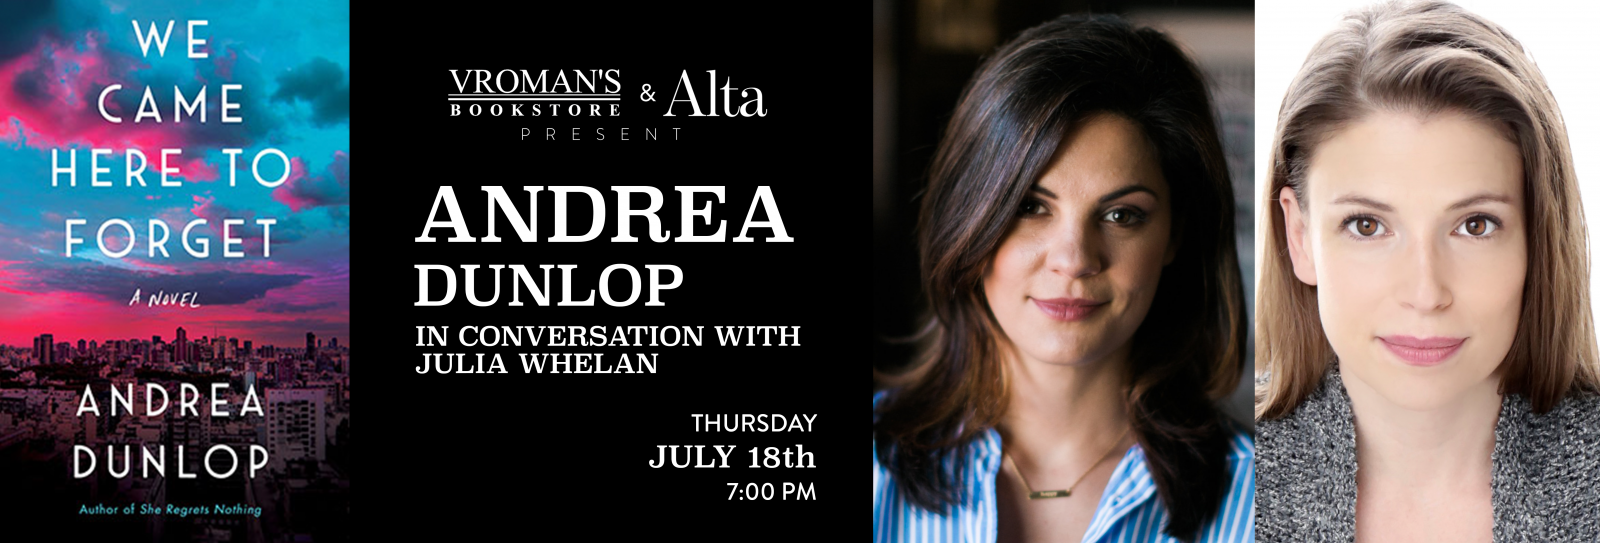 Andrea Dunlop book signing Thursday July 18th at 7pm